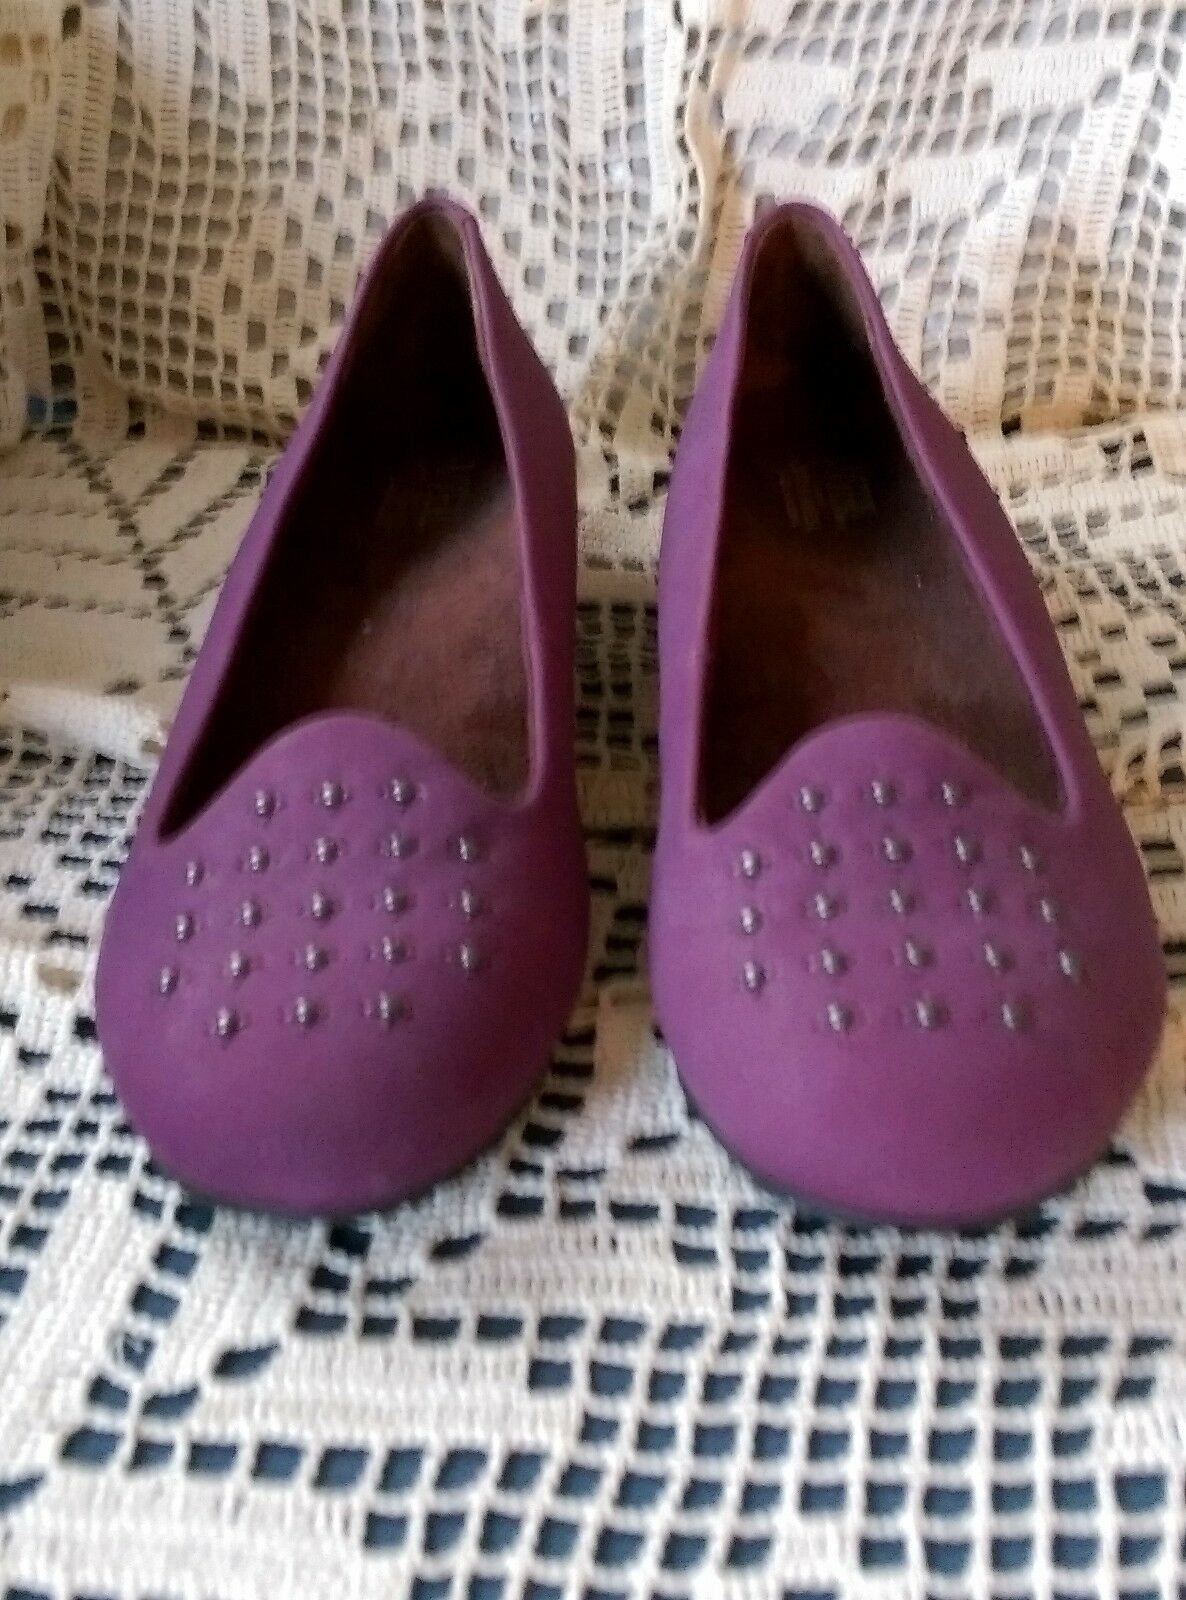 WEIL Orthaheel Technology NEW 7.5M / 38.5 leather flat SHOES NWOB plum purple